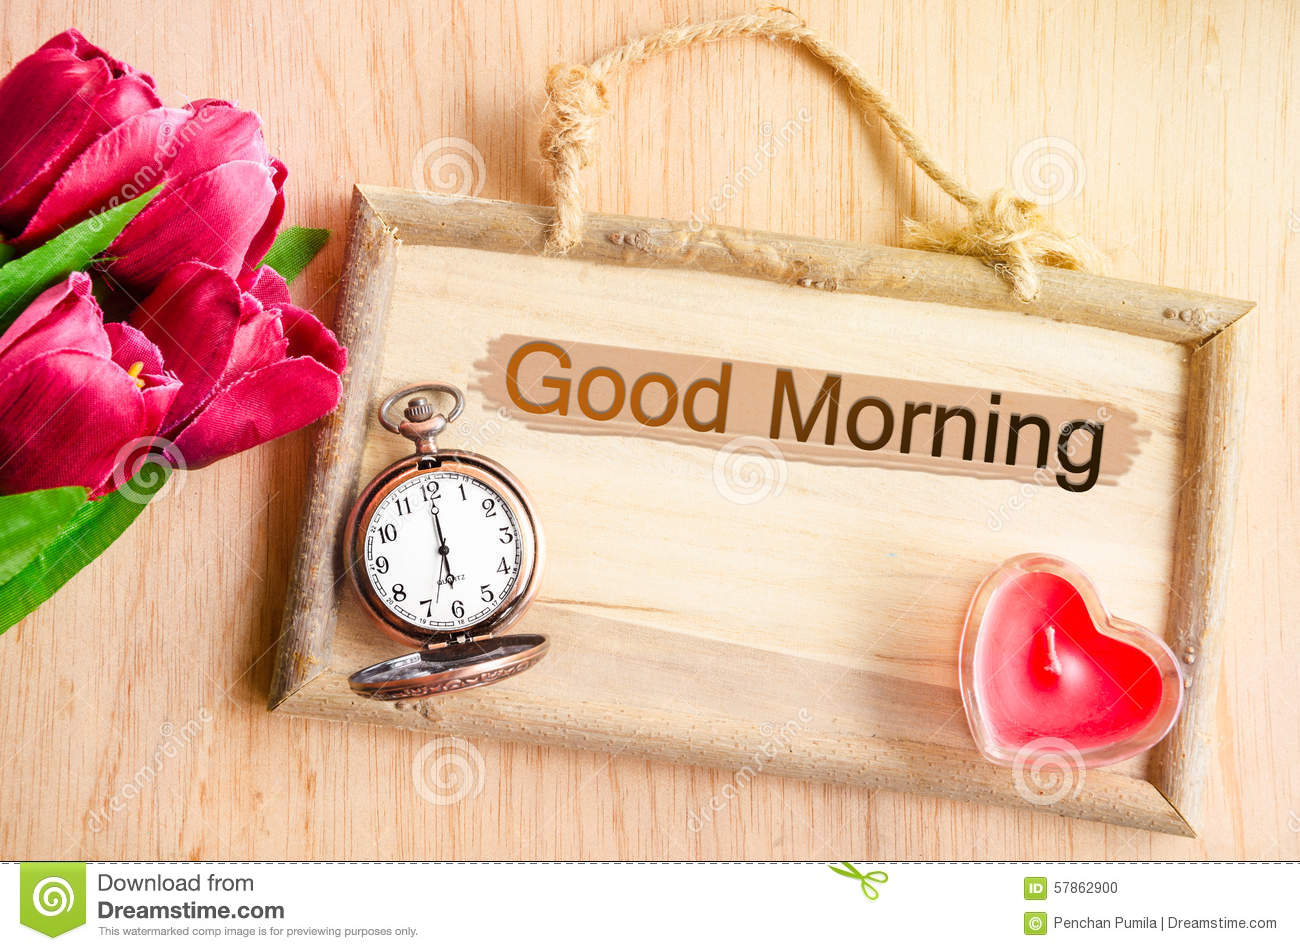 Good Morning Stock Images Download 49060 Royalty Free Photos